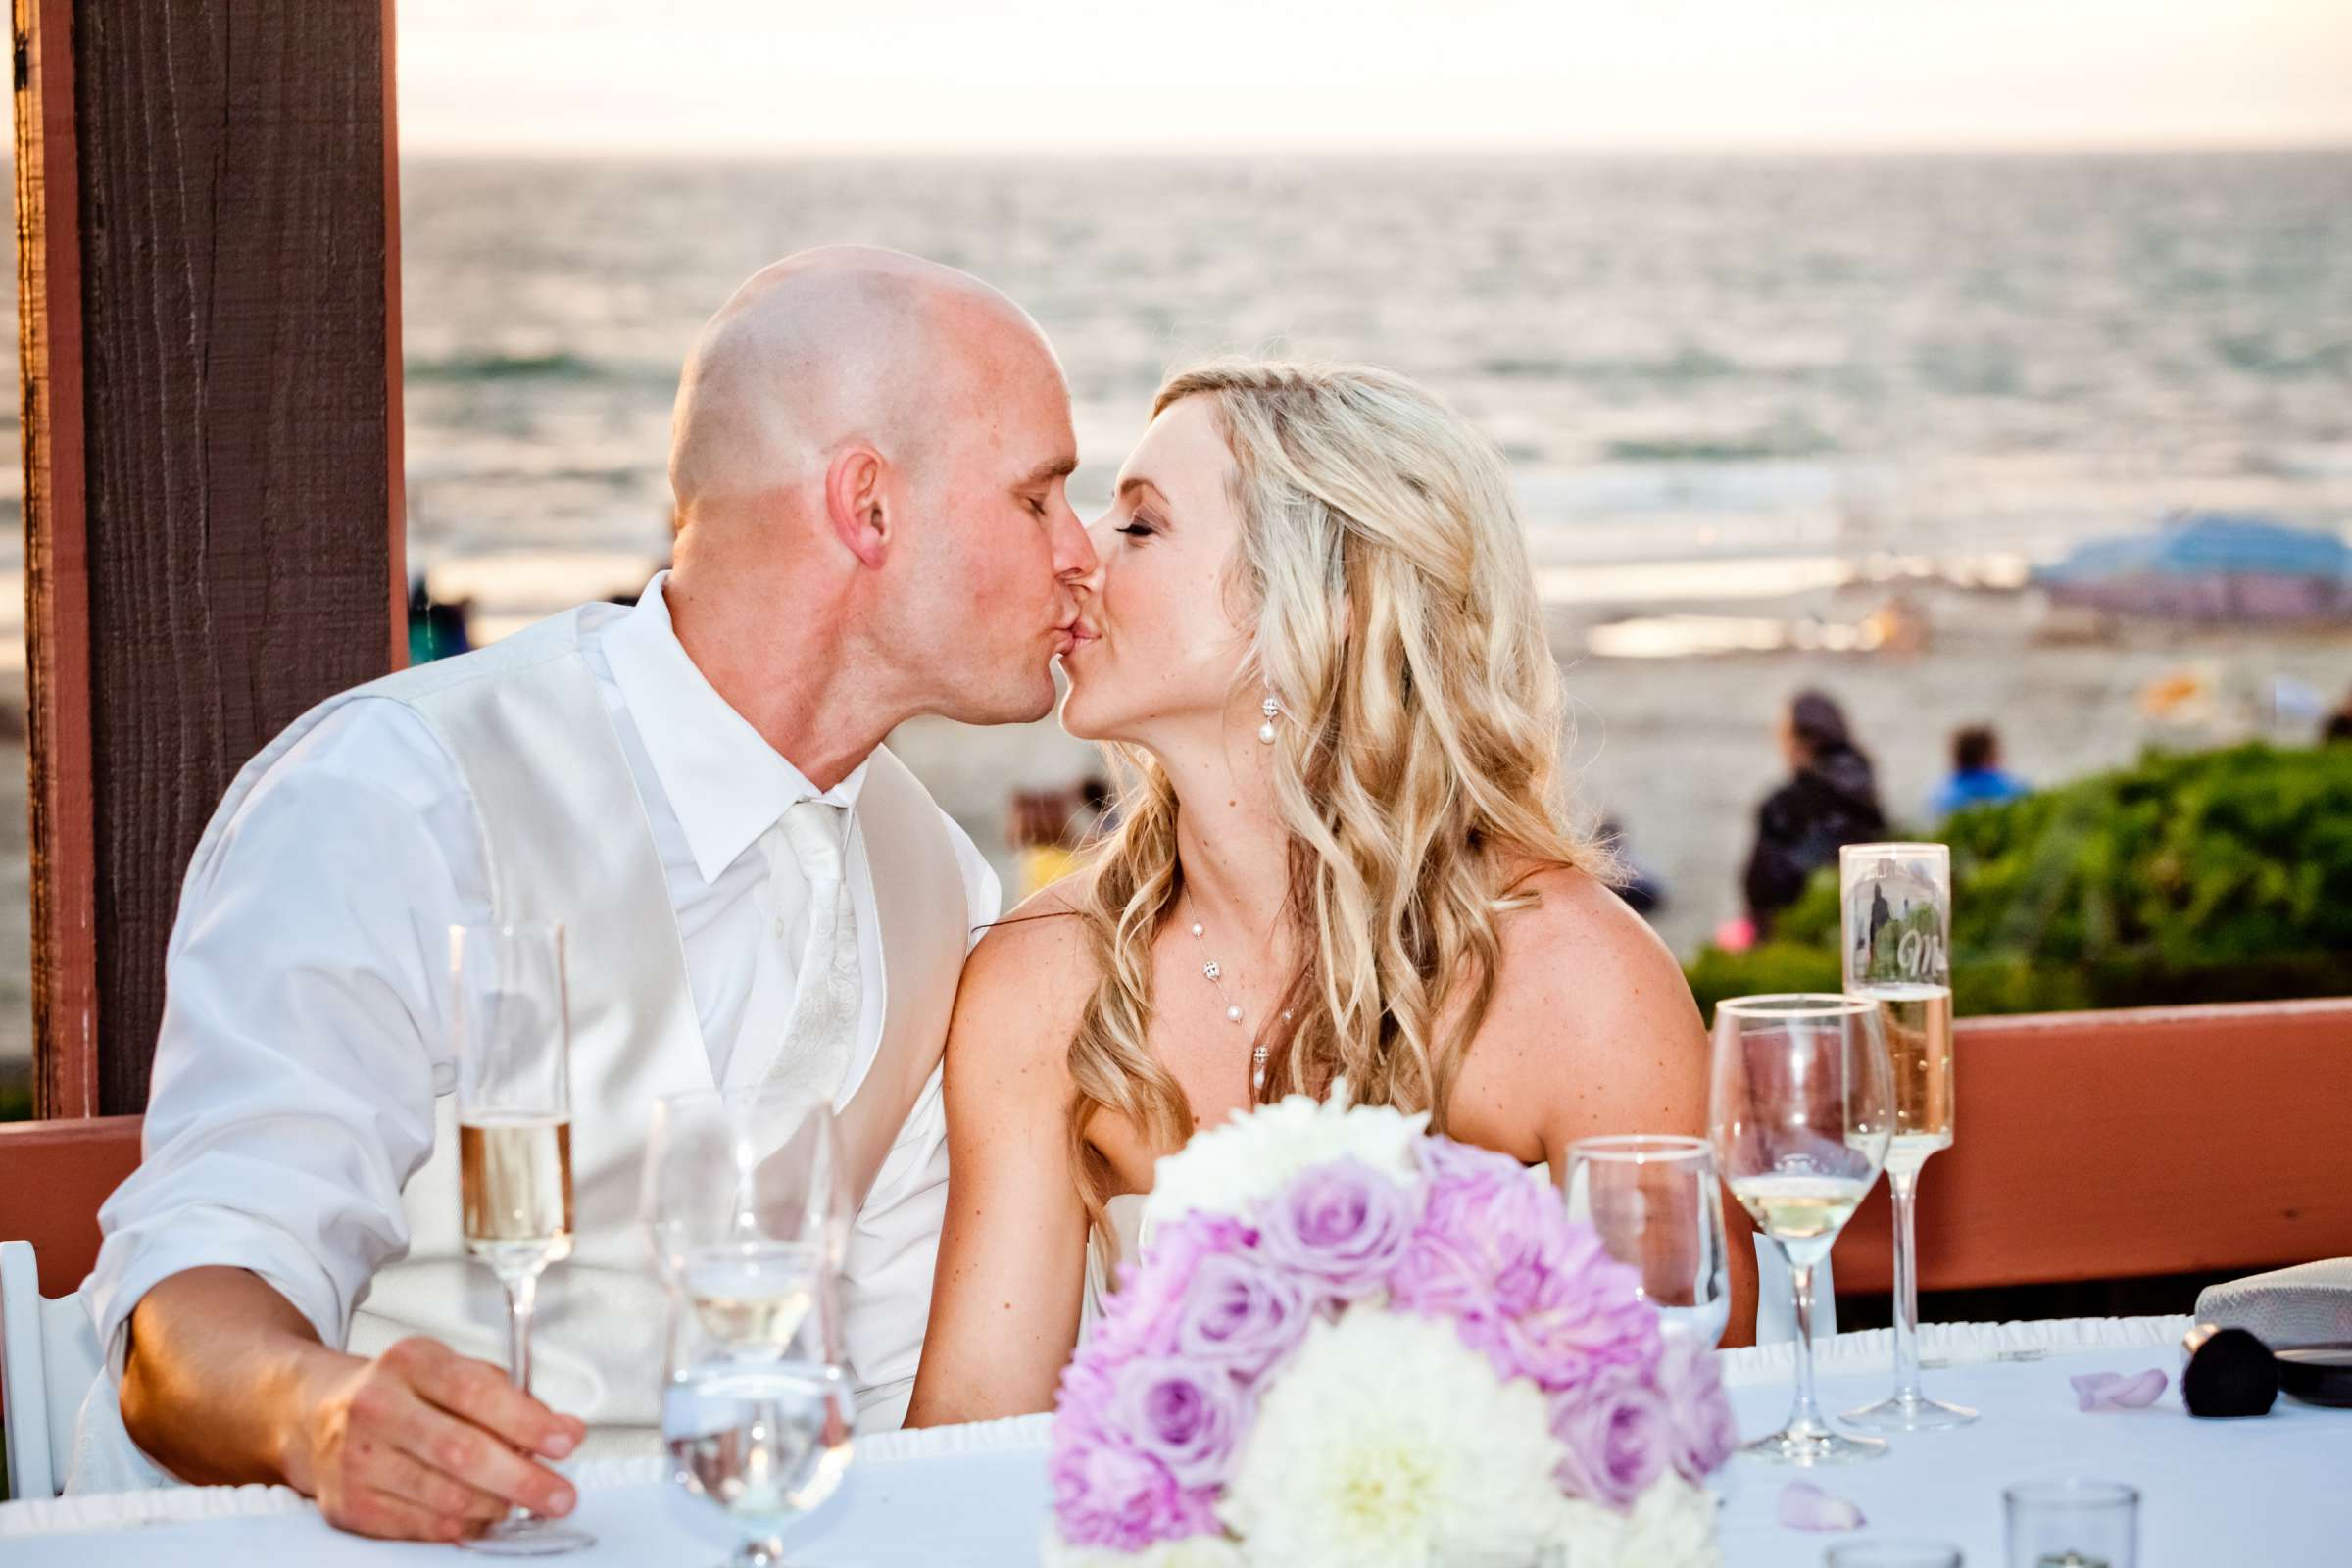 La Jolla Shores Hotel Wedding coordinated by I Do Weddings, Stefanie and Craig Wedding Photo #373319 by True Photography